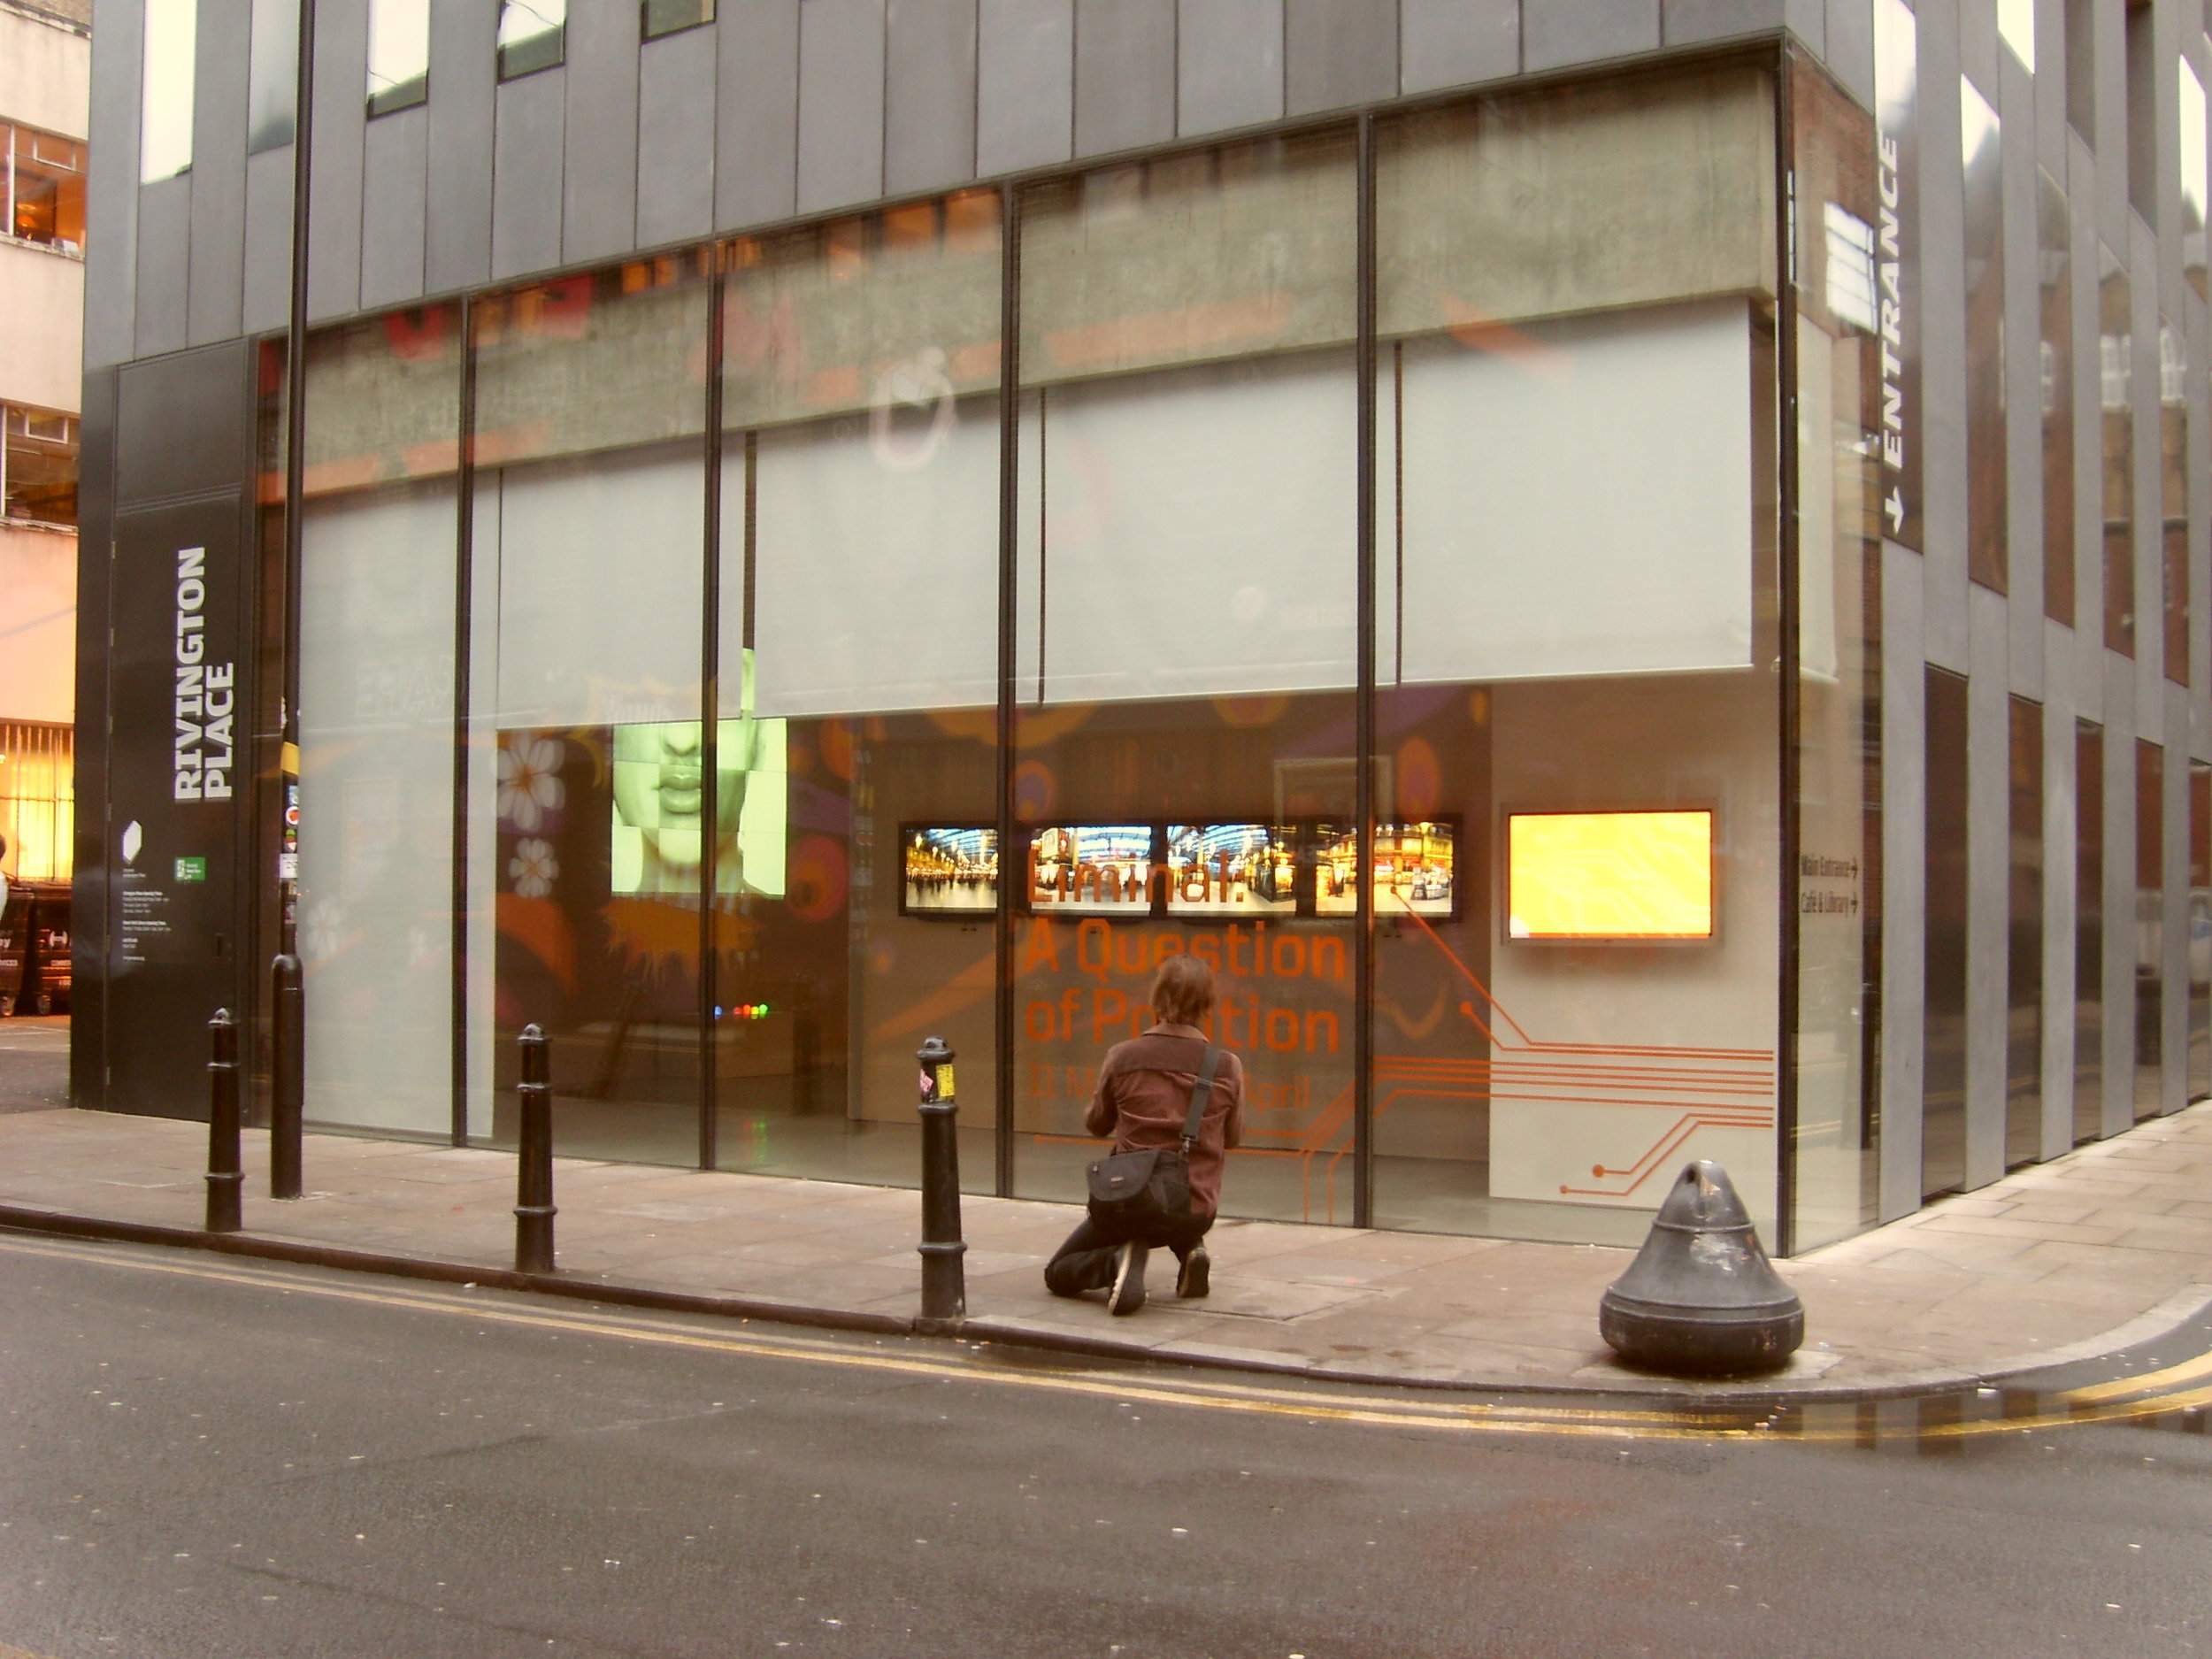 Liminal  at Rivington Place, 2009. INIVA, East London. Work:   [wɔ:l bɔ:l]  - interactive installation .